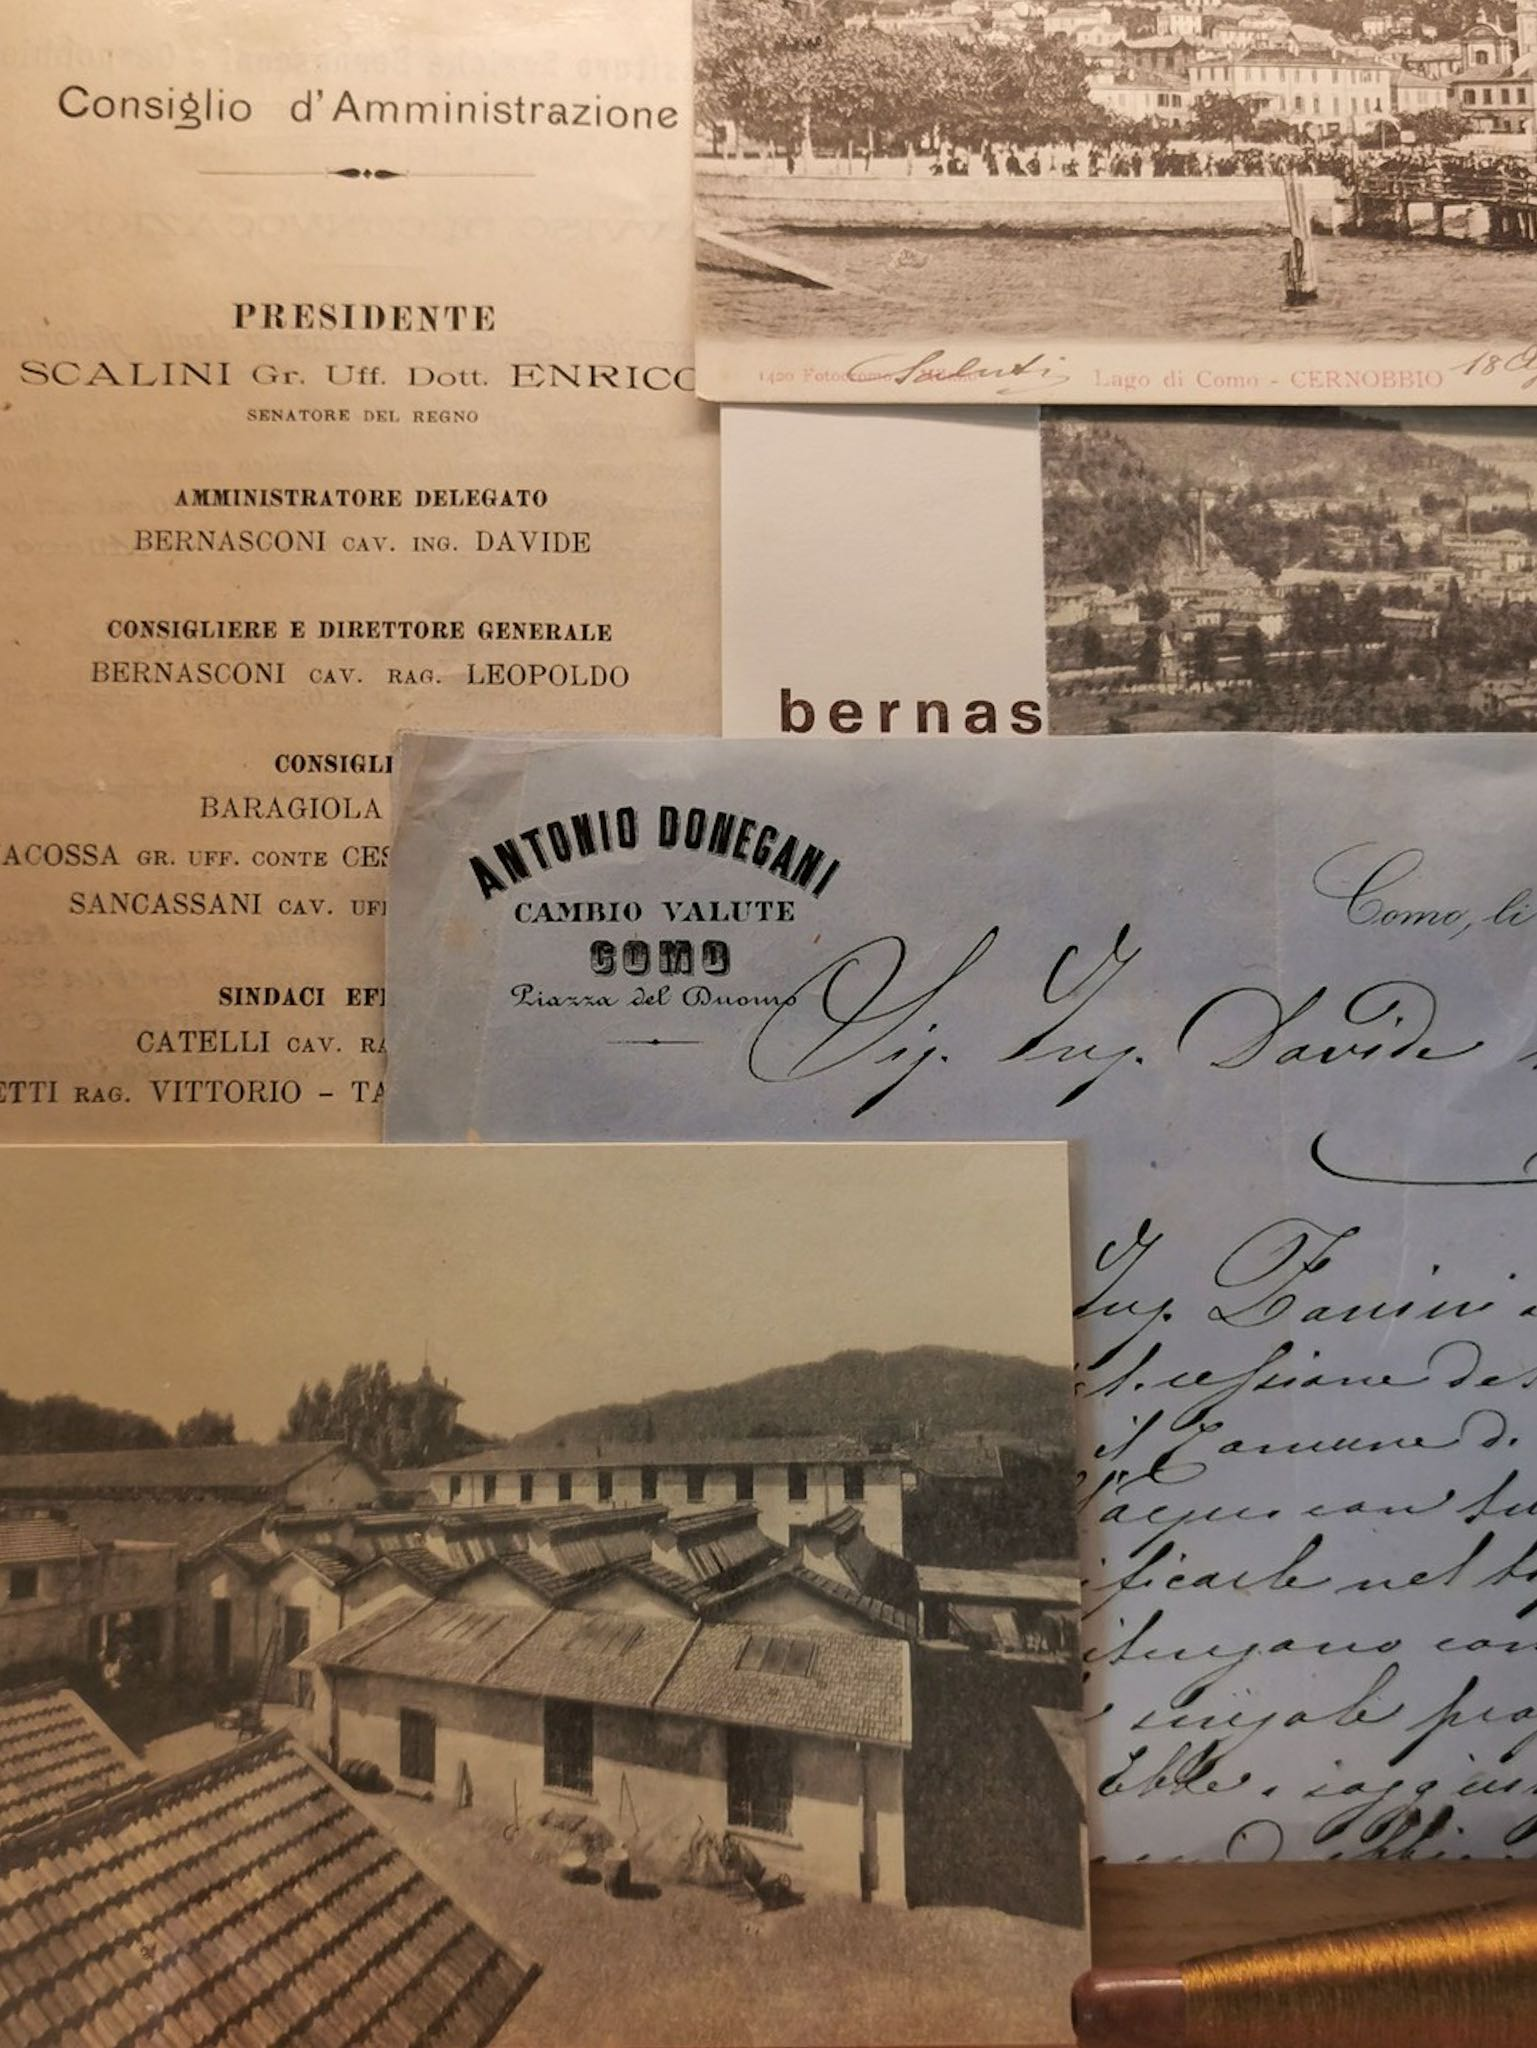 Precious documents narrating the stories of former employees on display at Villa Bernasconi in Cernobbio